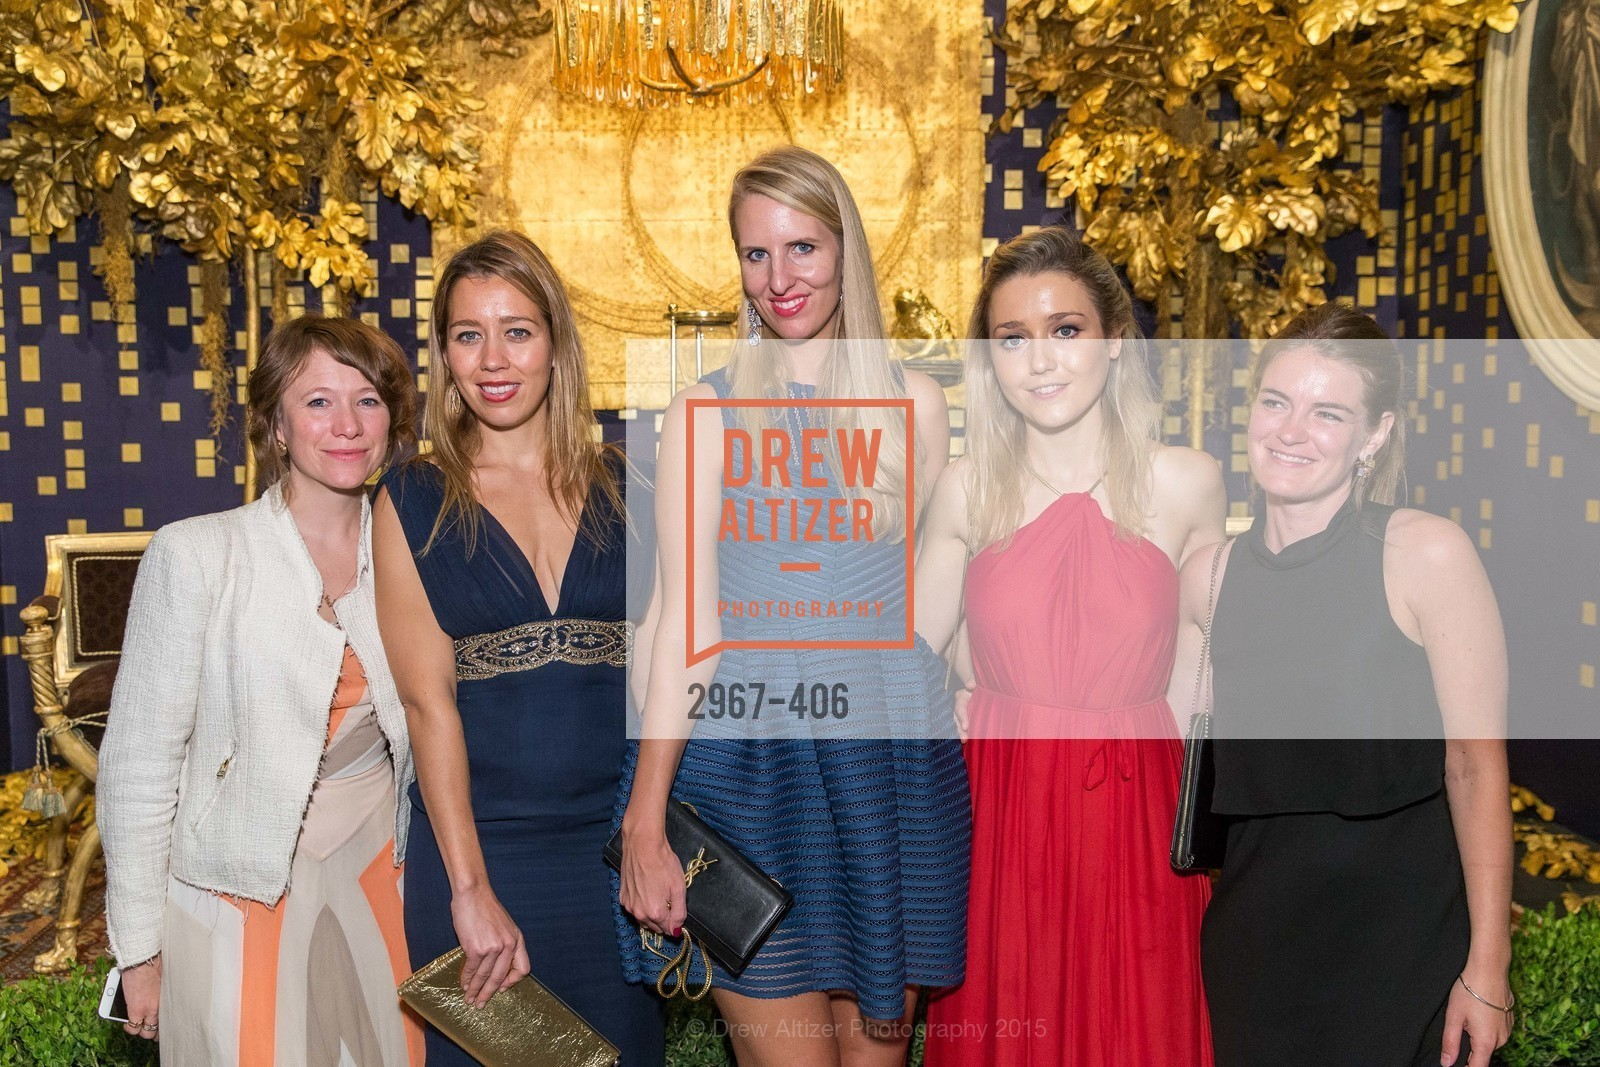 Jemma Cave, Rachel Gurney, Gwendolyn Rayner, Hannah Cecil-Gurney, Samantha Heard, The San Francisco Fall Antiques Show, Festival Pavilion, Fort Mason, October 21st, 2015,Drew Altizer, Drew Altizer Photography, full-service agency, private events, San Francisco photographer, photographer california